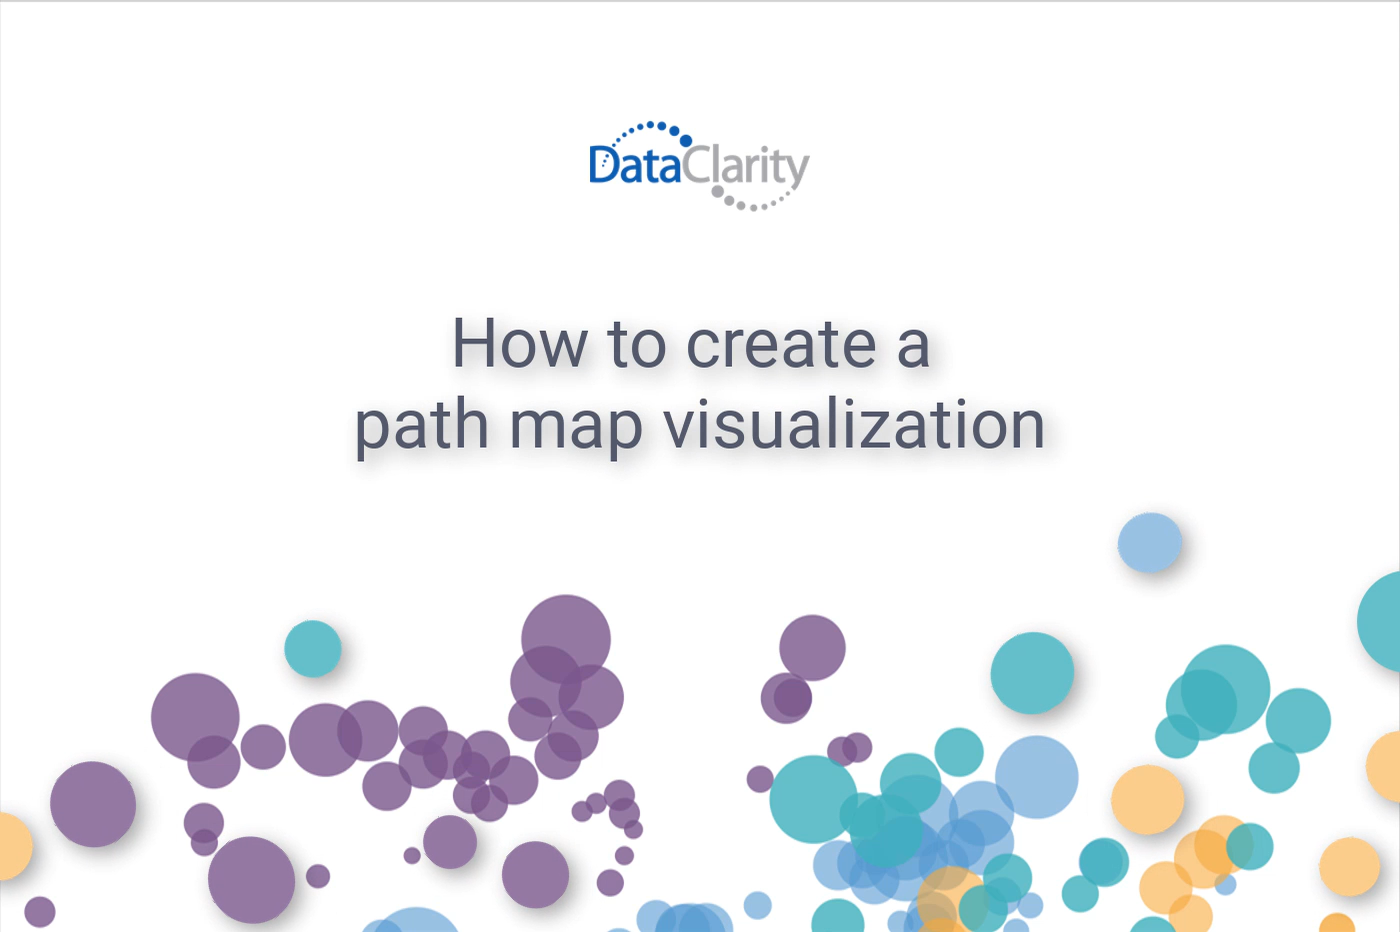 How to create a path map